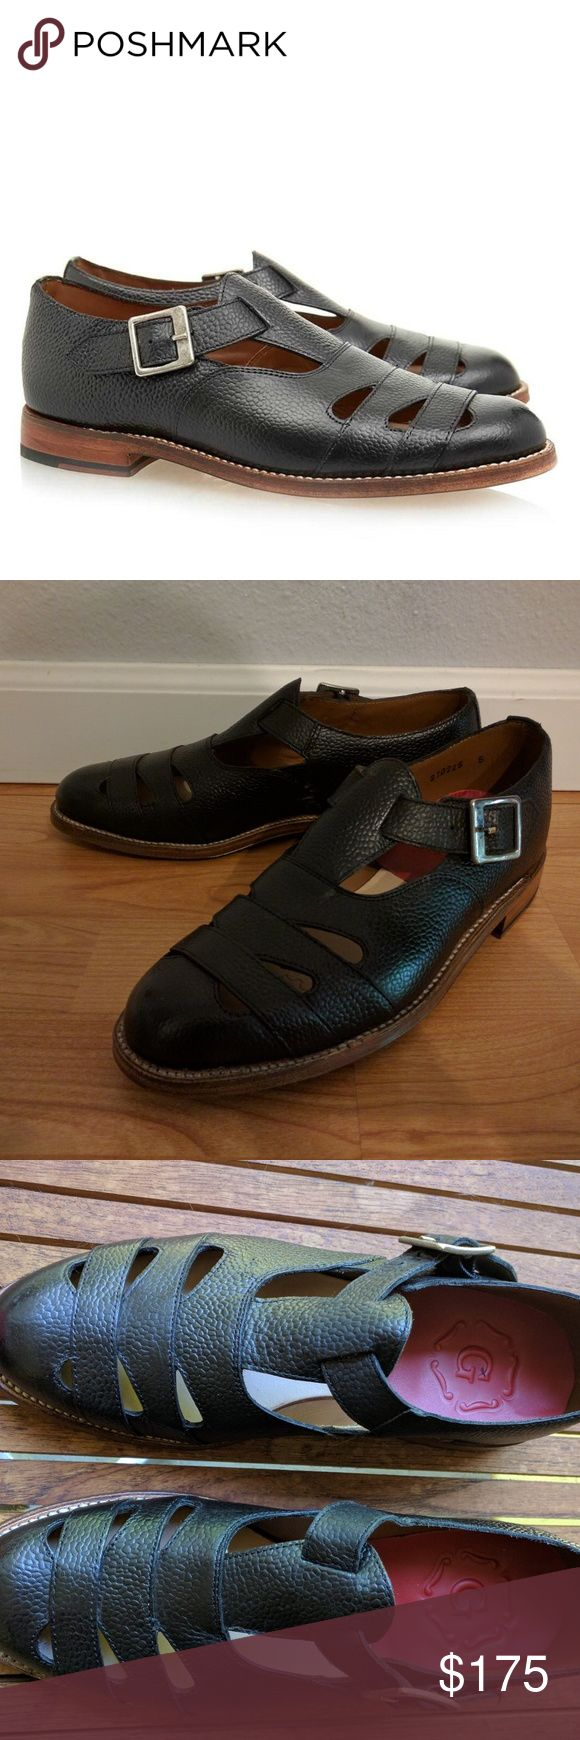 Grenson Briony Black Buckle Sandals Oxfords US 7 Beautiful unworn Goodyear welted Grenson shoes. Made in England, originally $410. Received as a gift and turned out to be too small. Size UK 5, US 7. Grenson Shoes Flats & Loafers